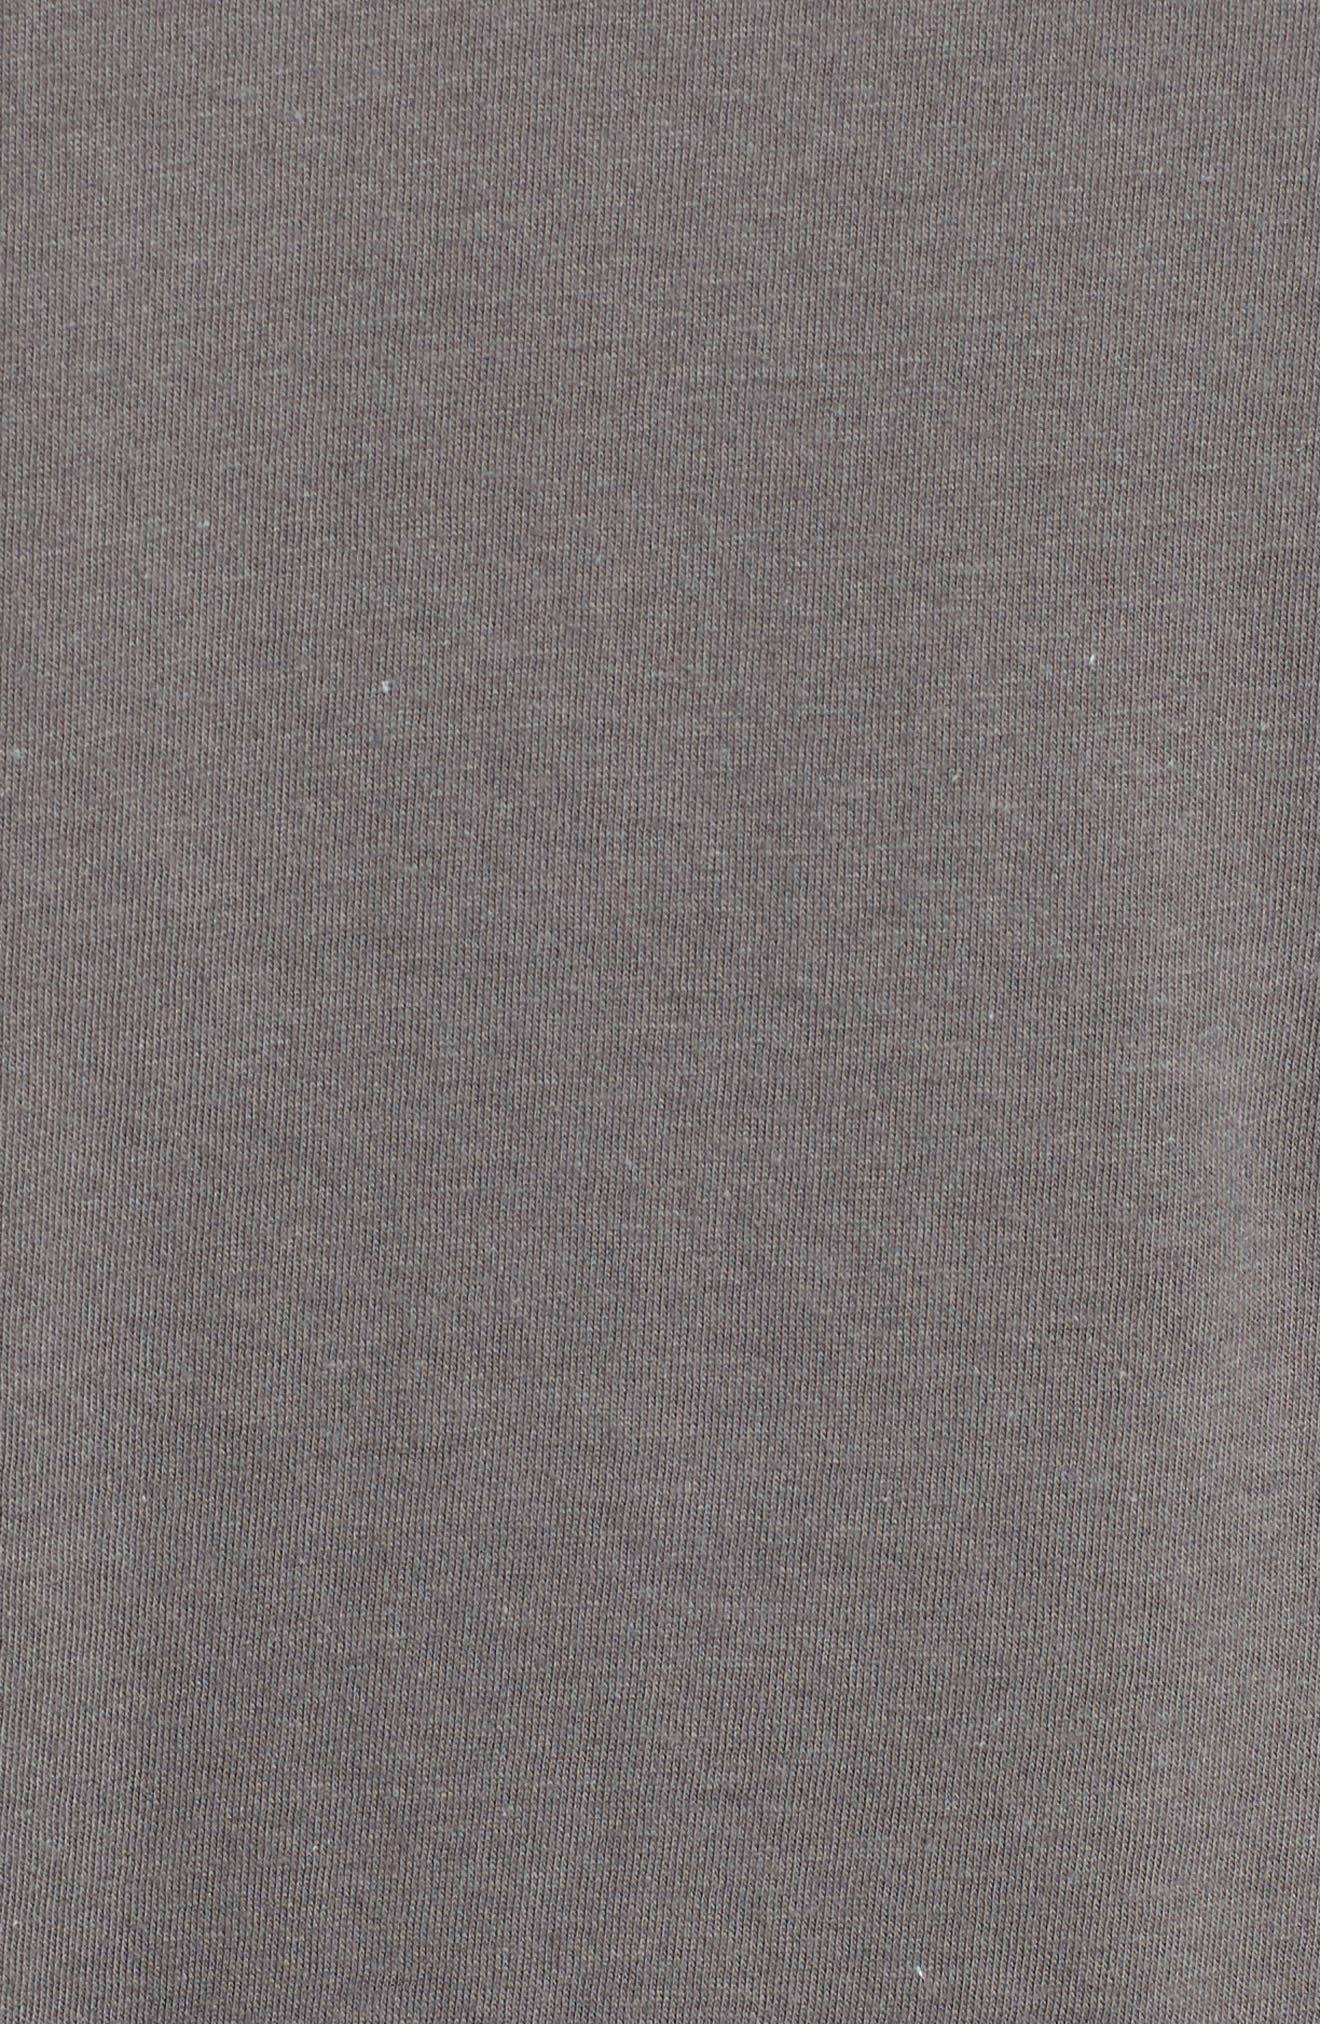 Dazed & Confused Graphic T-Shirt,                             Alternate thumbnail 5, color,                             030